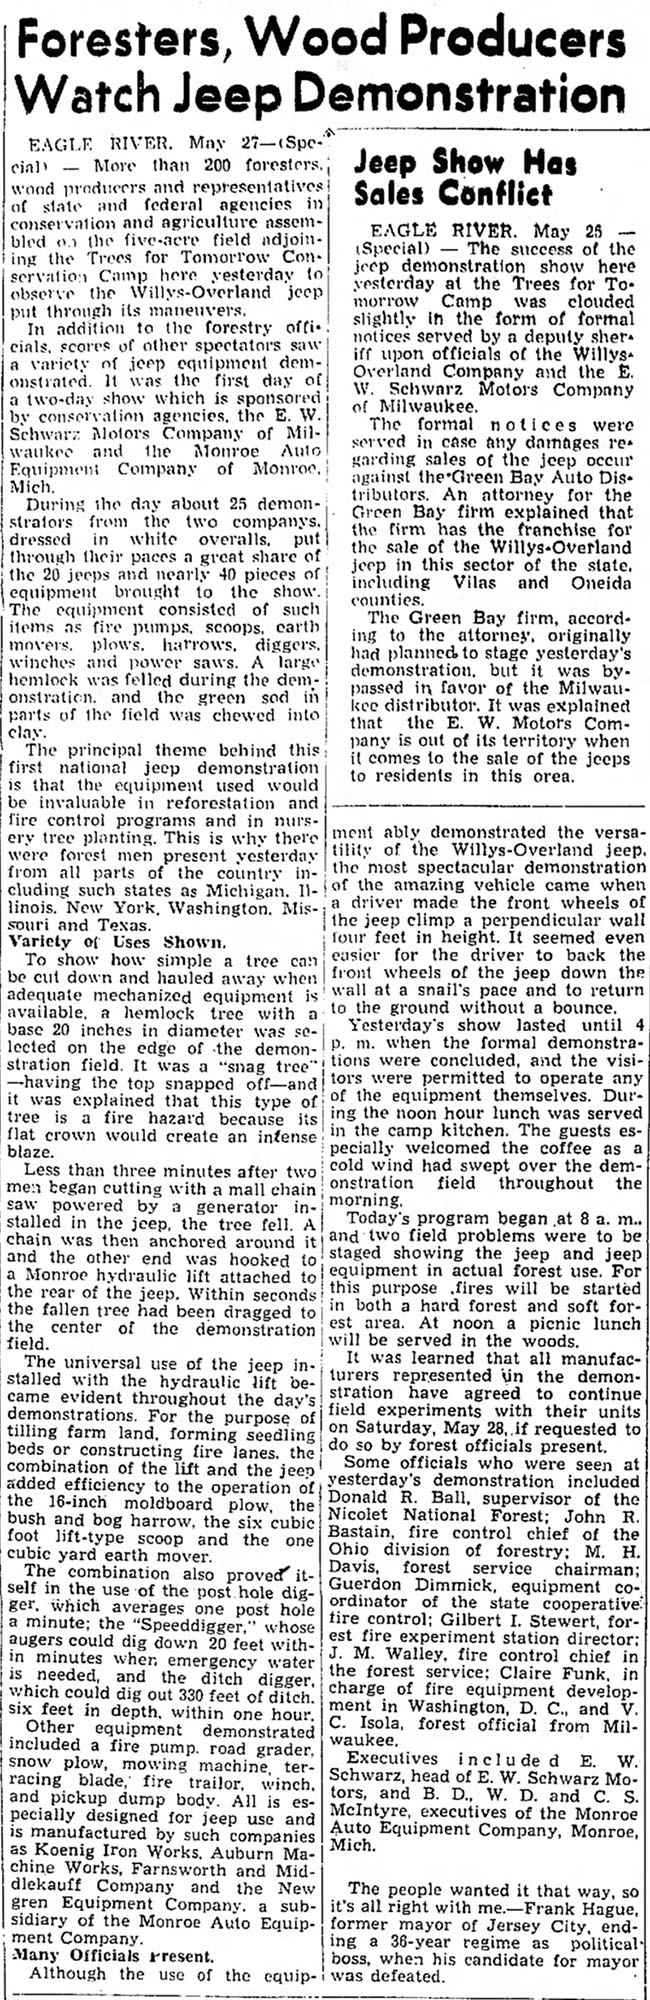 1949-05-27-rhinelander-daily-news-wi-foresters-lores